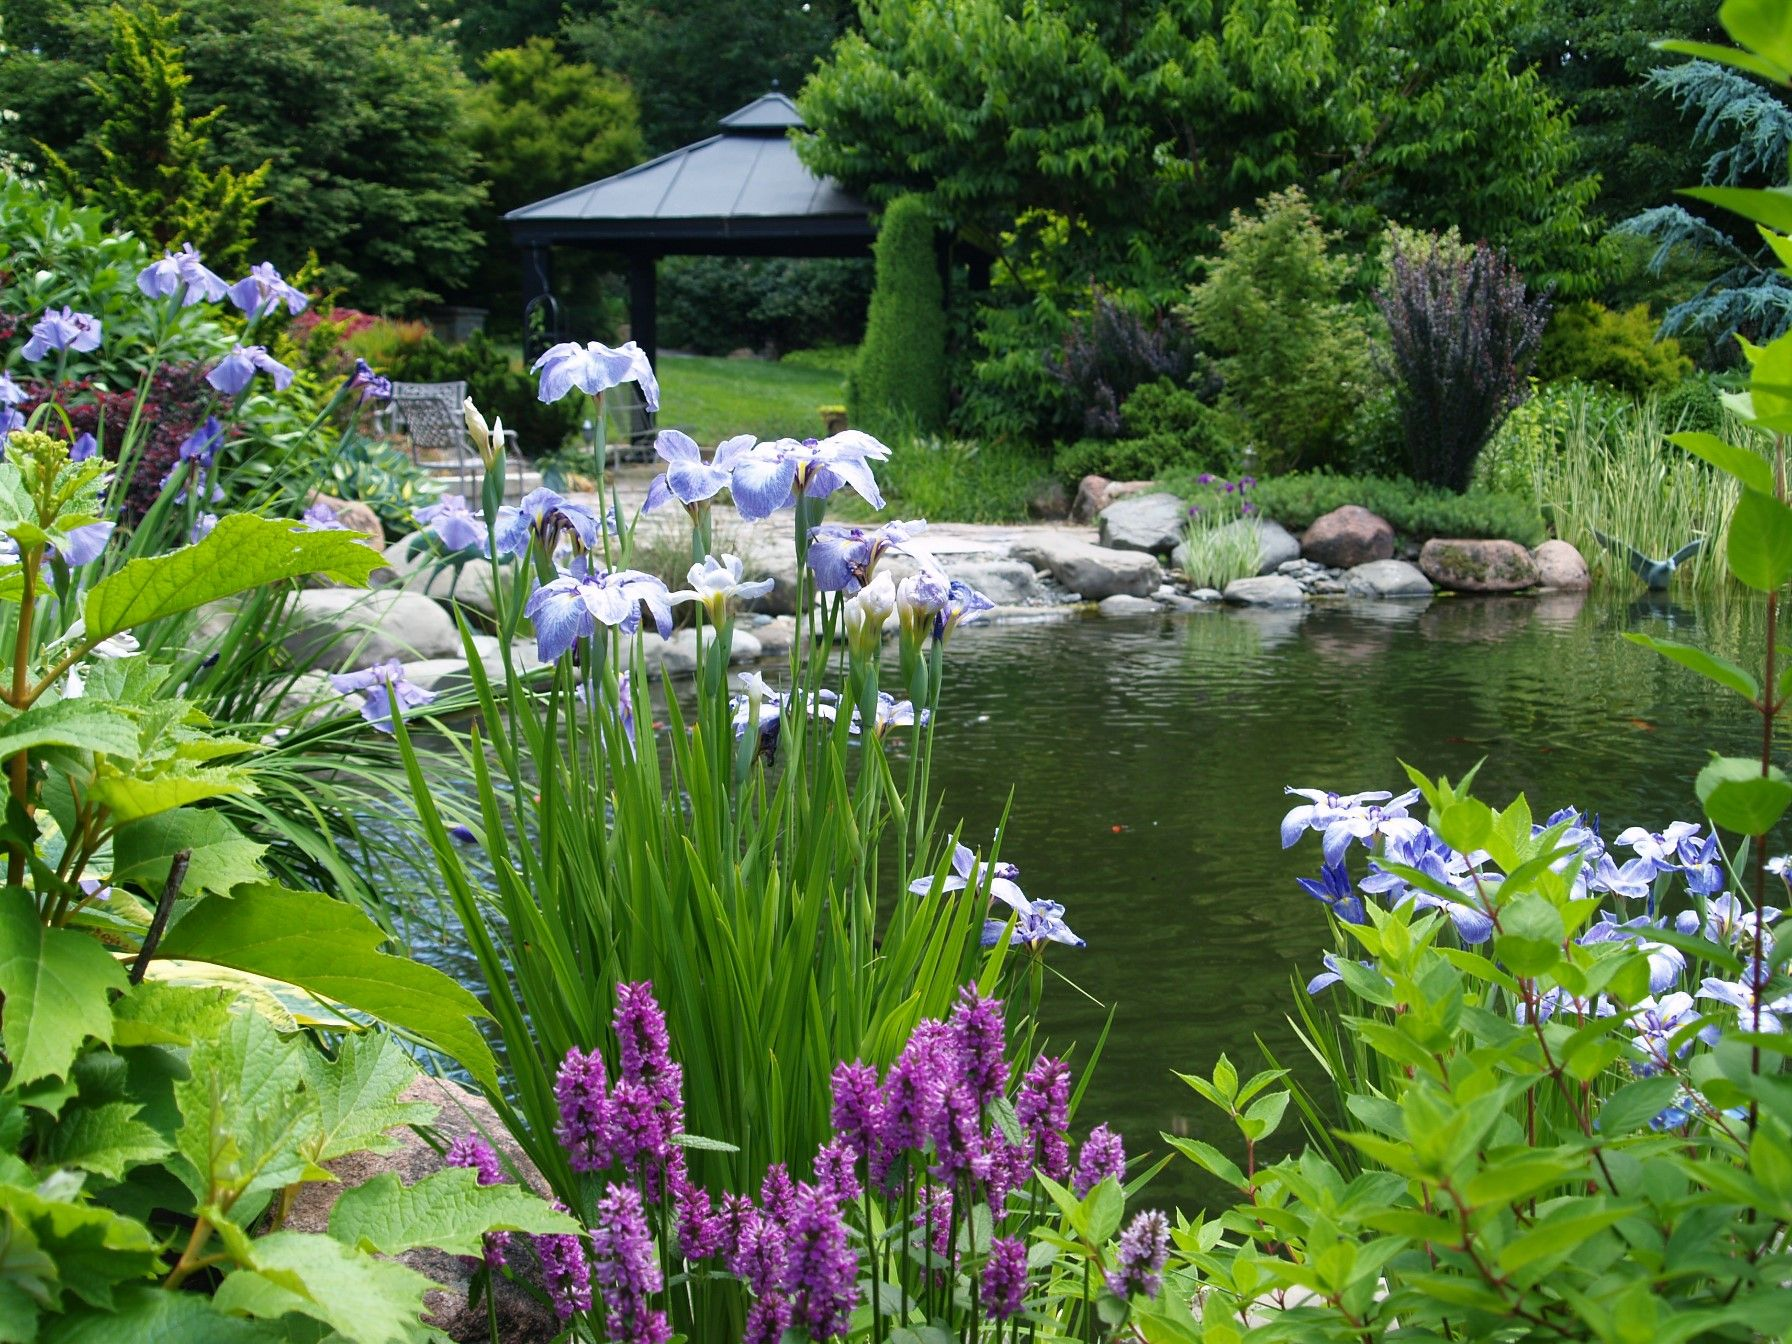 A Small Summerhouse And Stone Patio Border This Large Pond 400 x 300